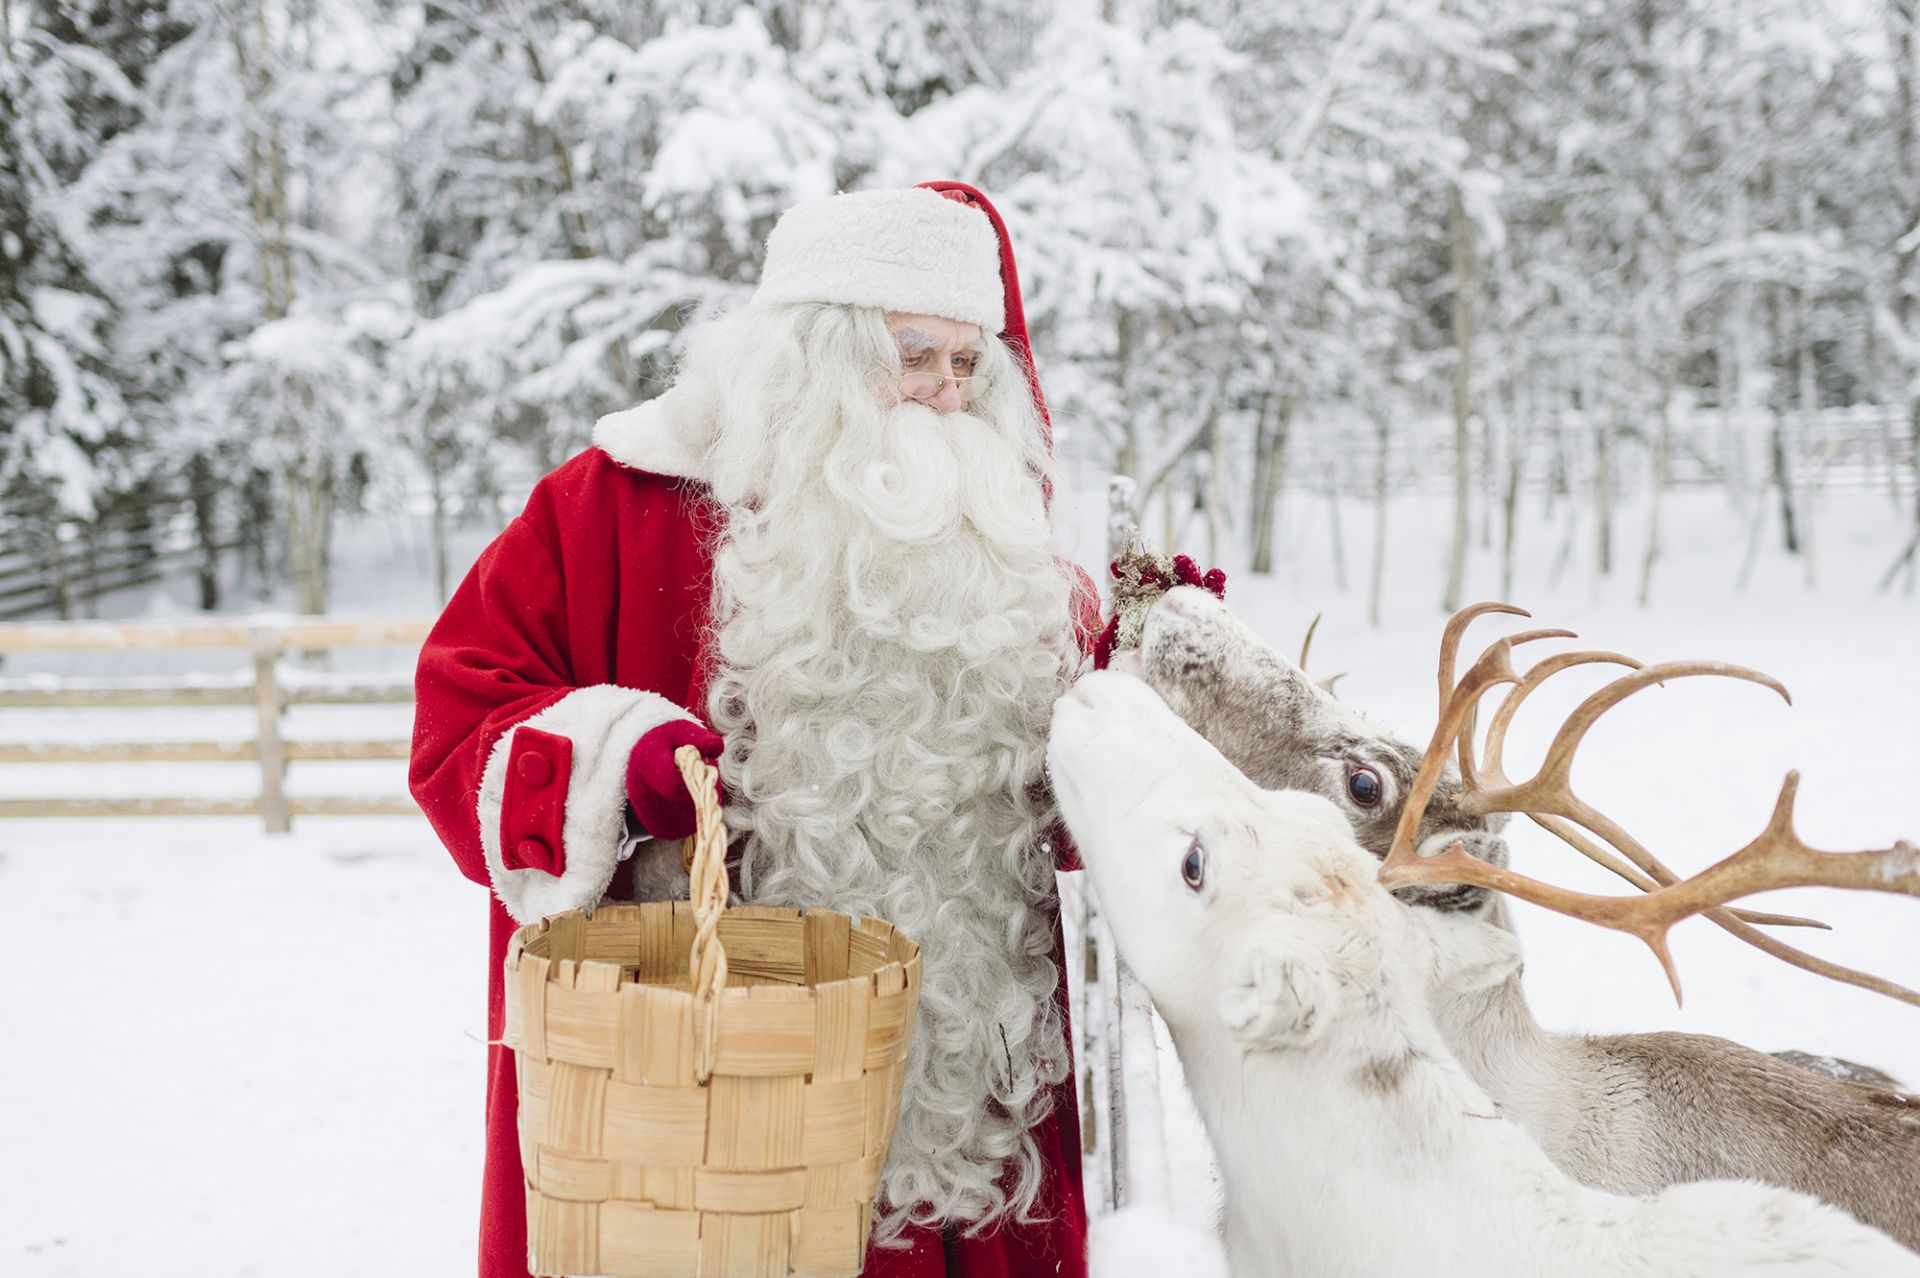 Santa Claus in Lapland